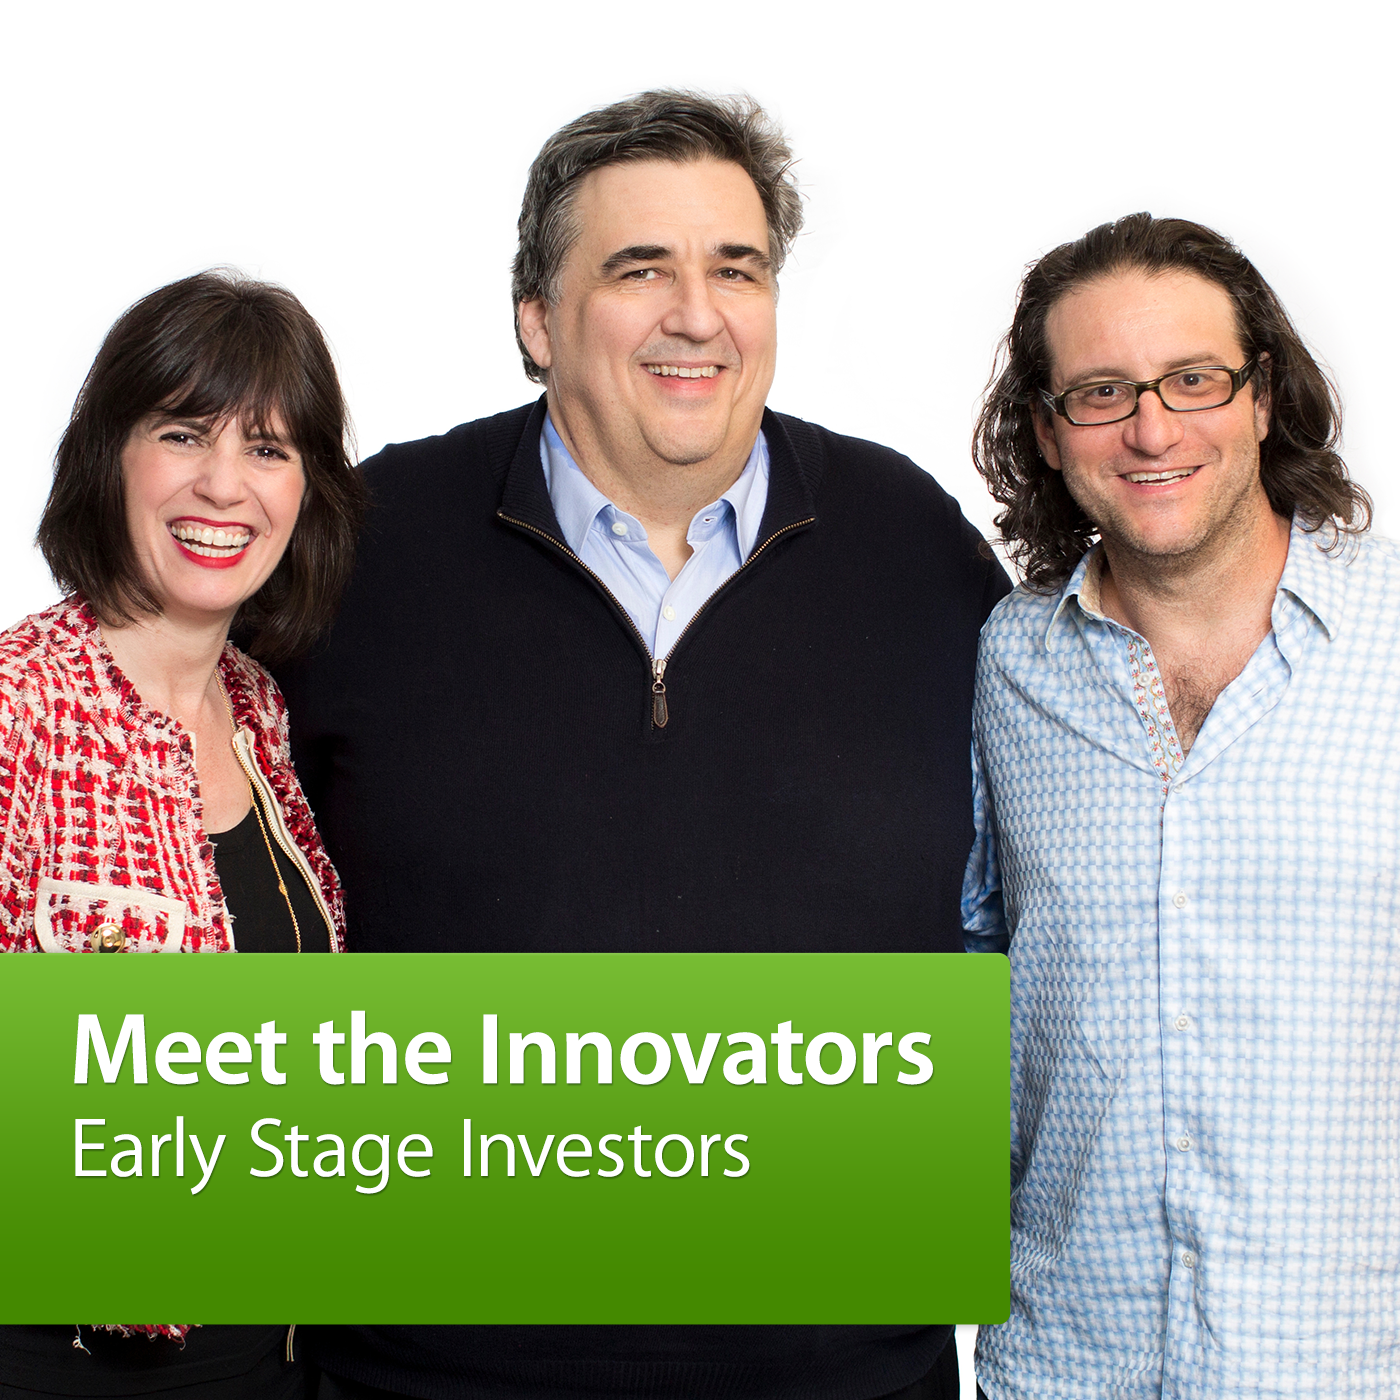 Meet the Innovators: Early Stage Investors